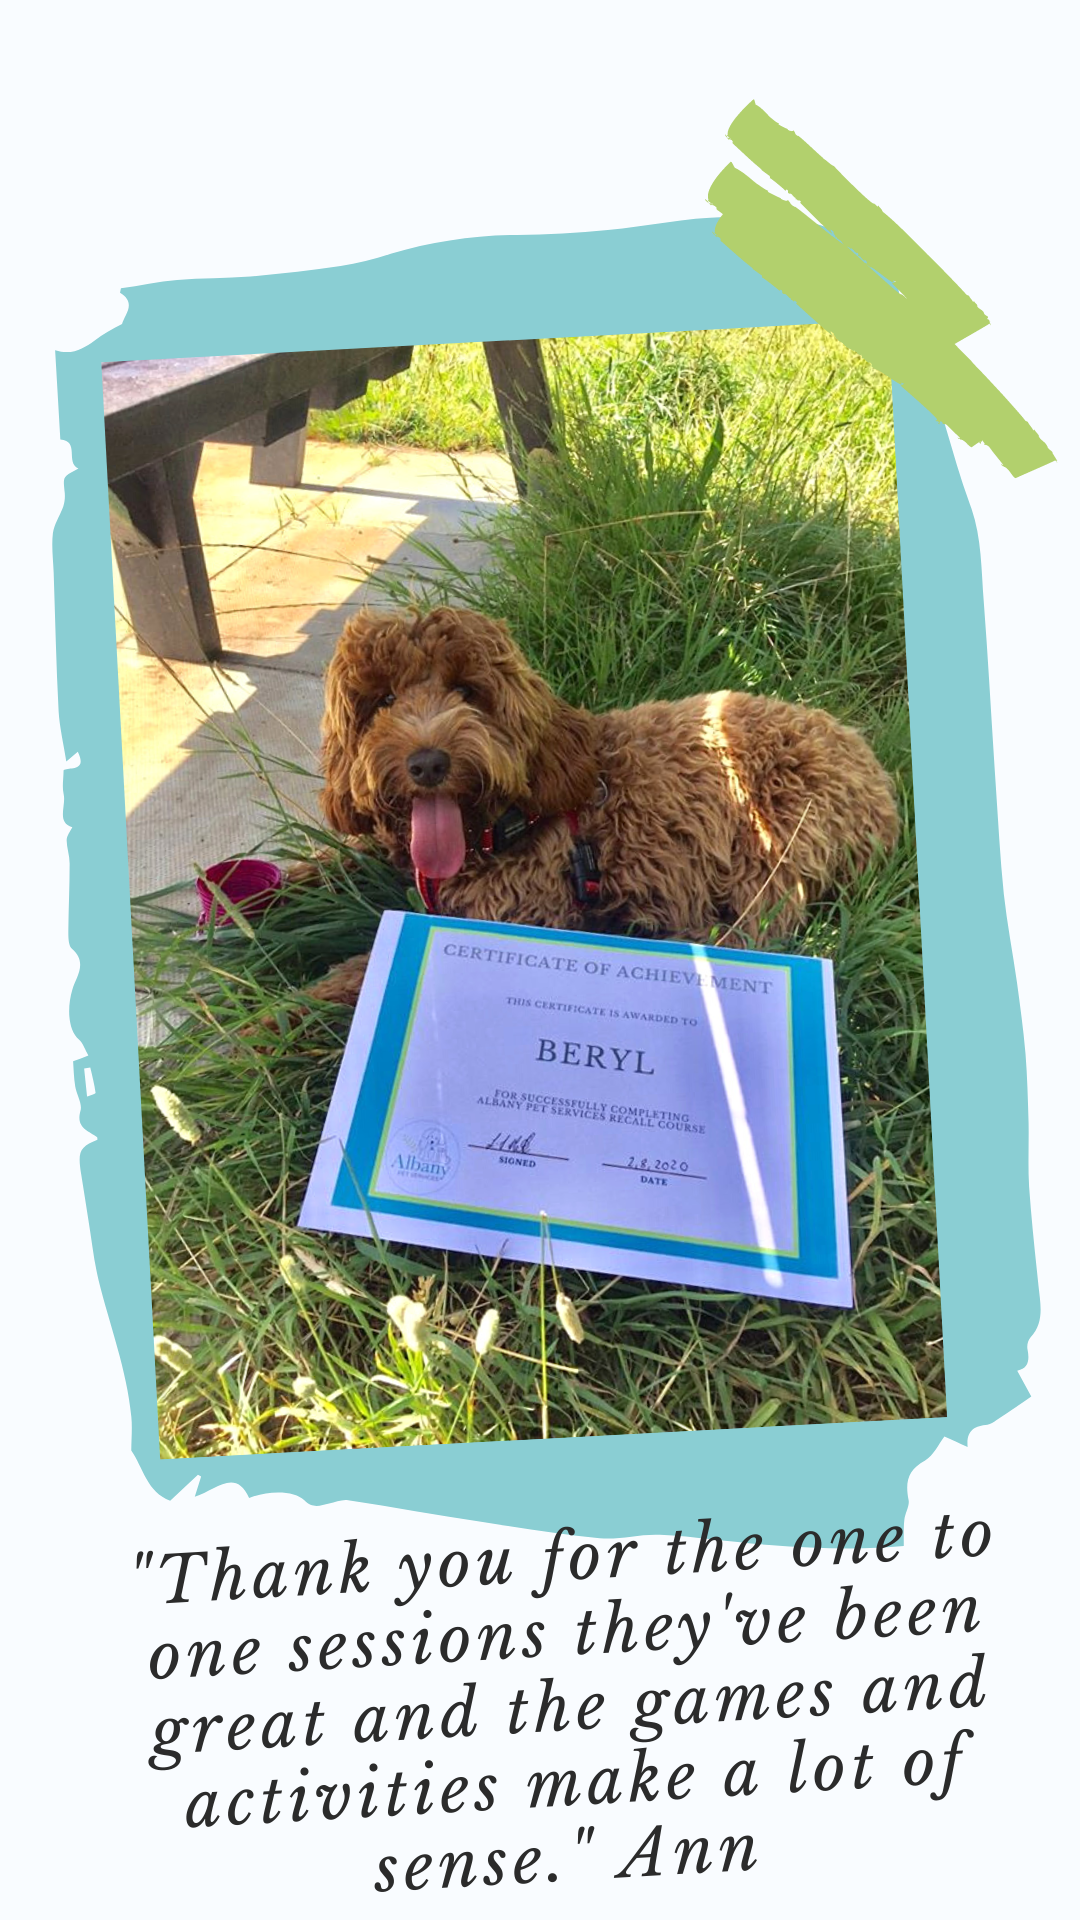 Beryl poses with her recall certificate